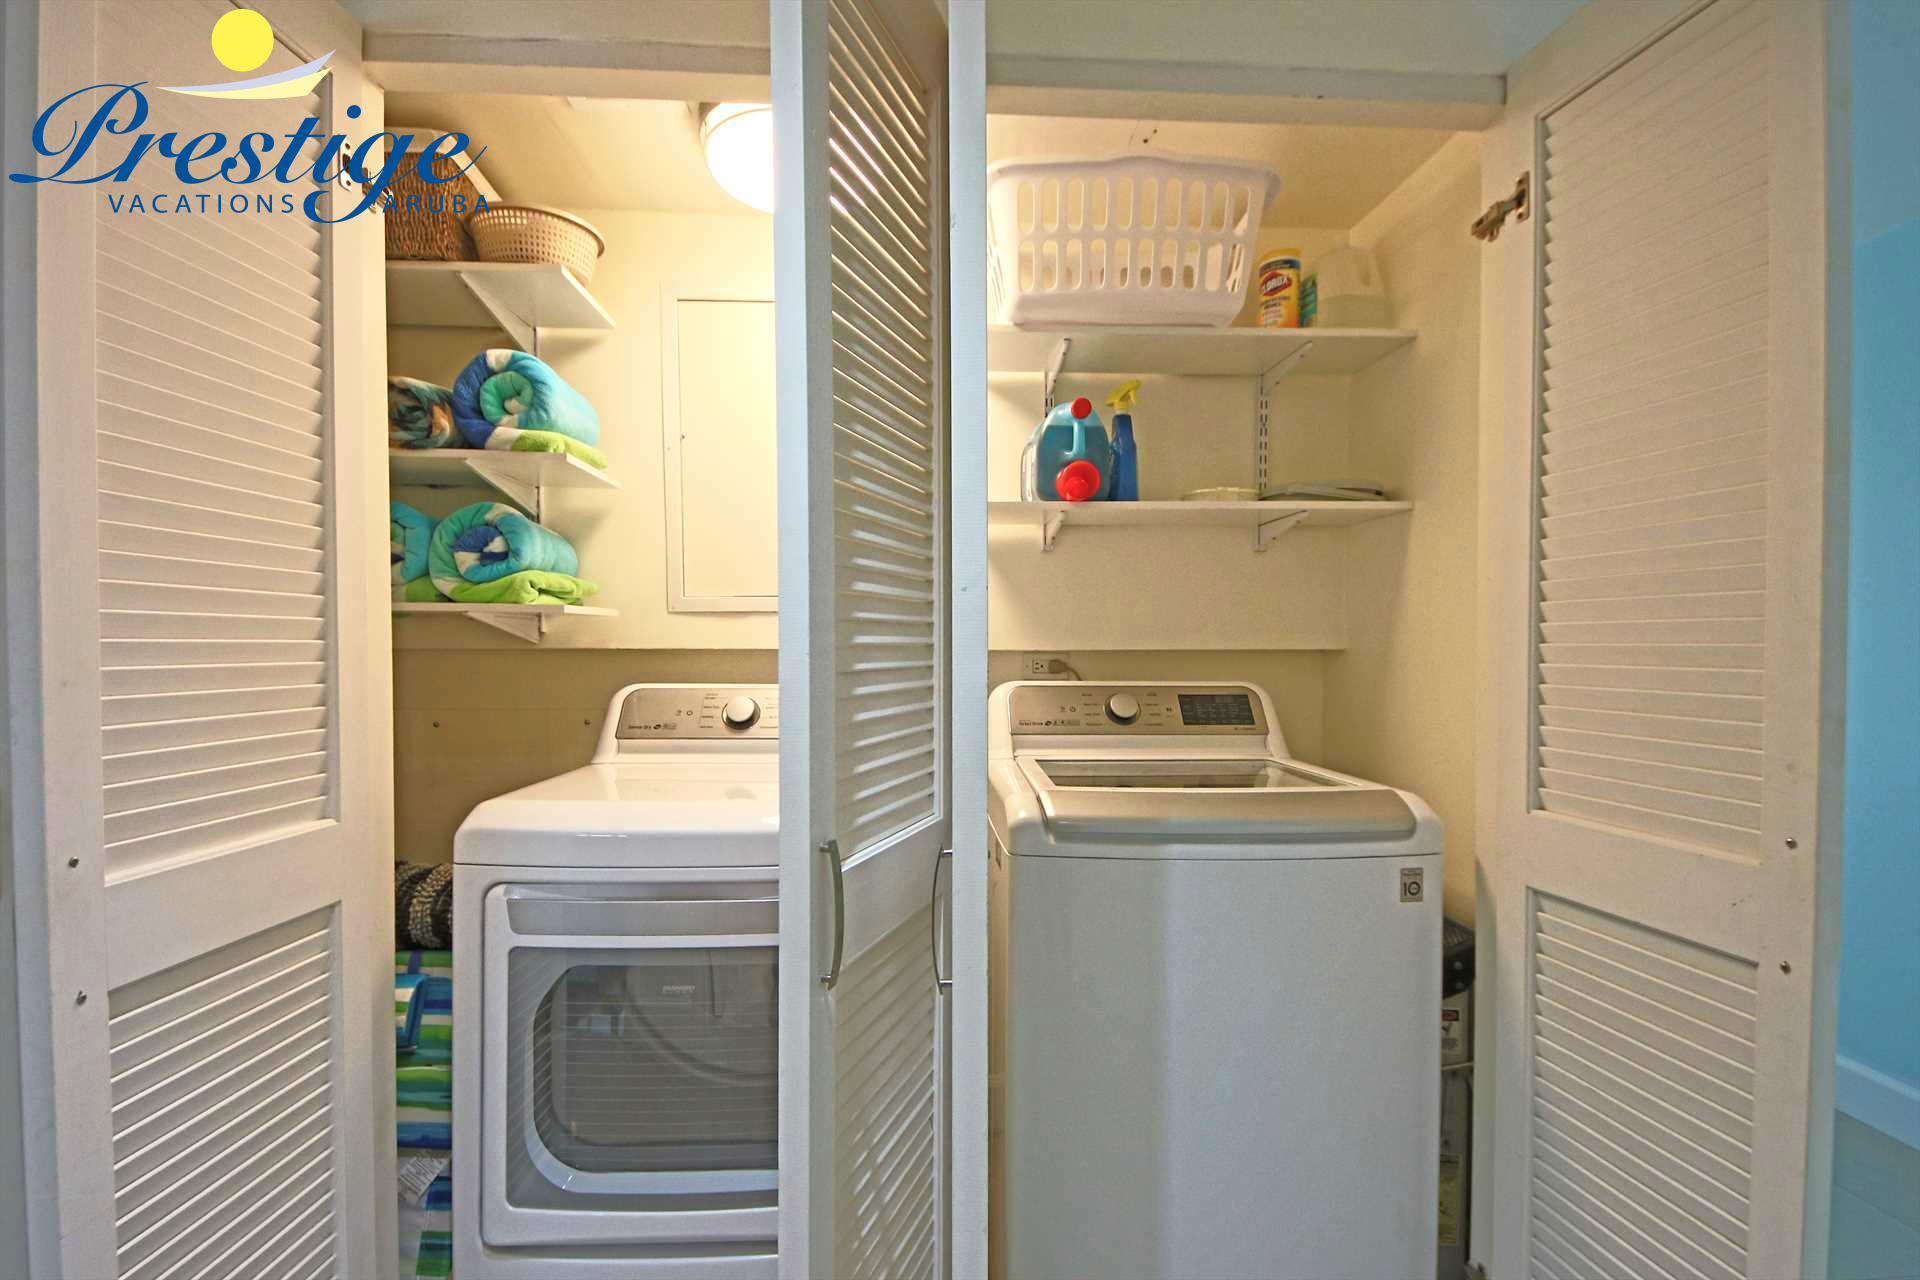 The LG 5.0 Cu. Ft. Washer and LG 7.3 Cu. Ft. Dryer